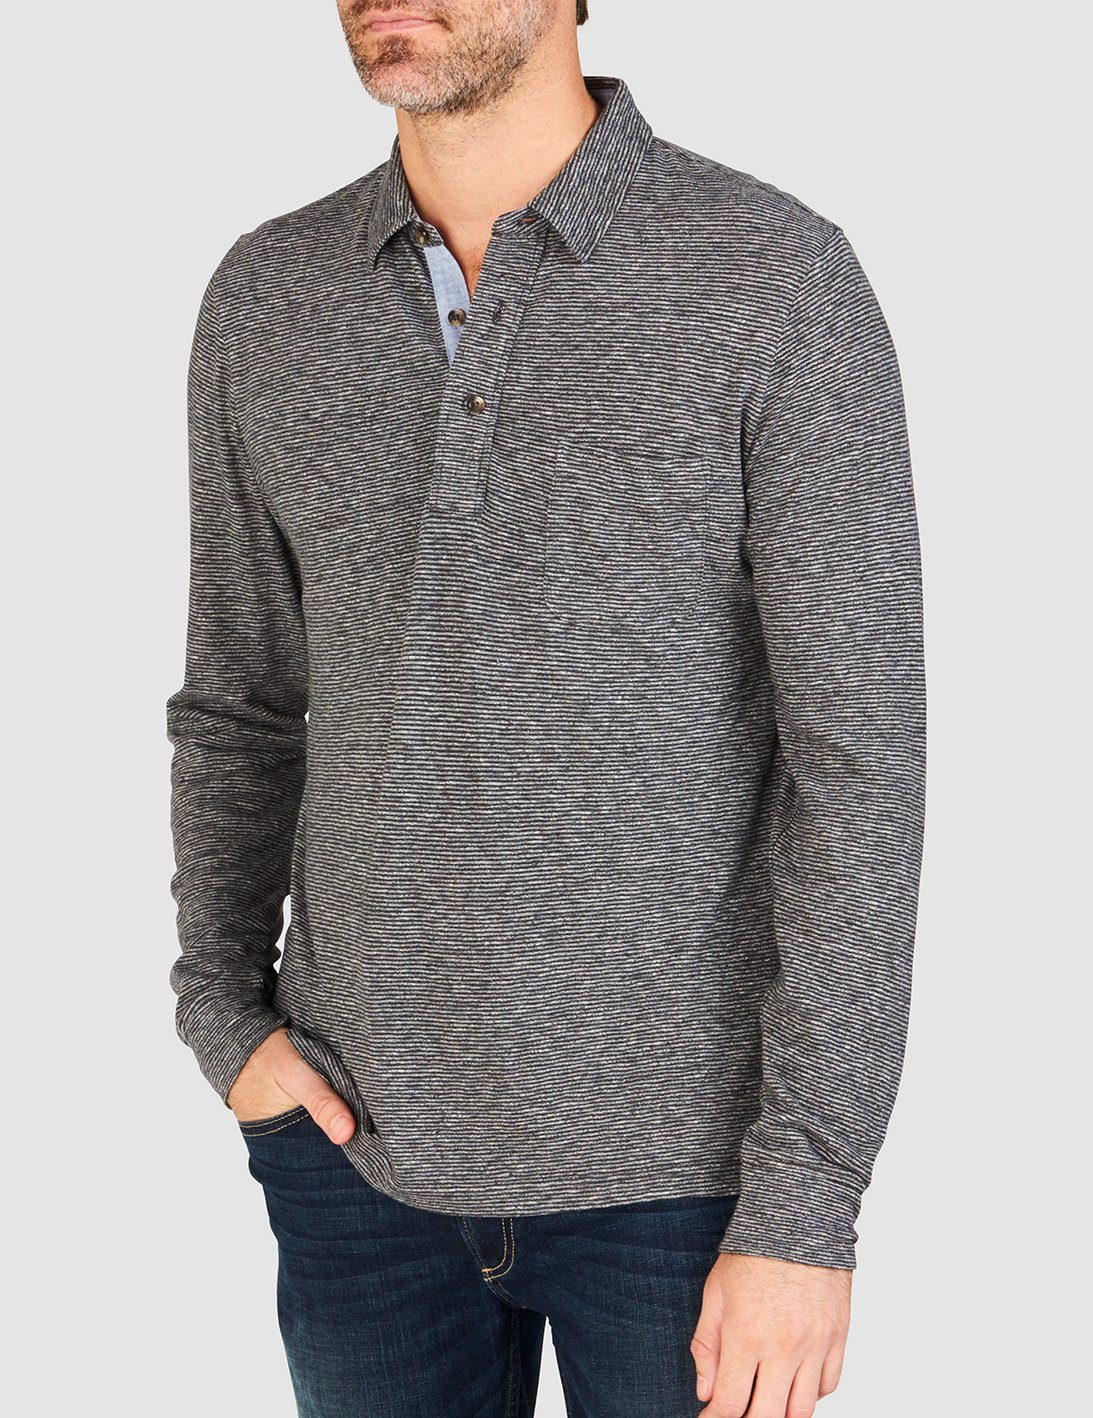 Luxe Heather Long-Sleeve Polo - Charcoal Stripe